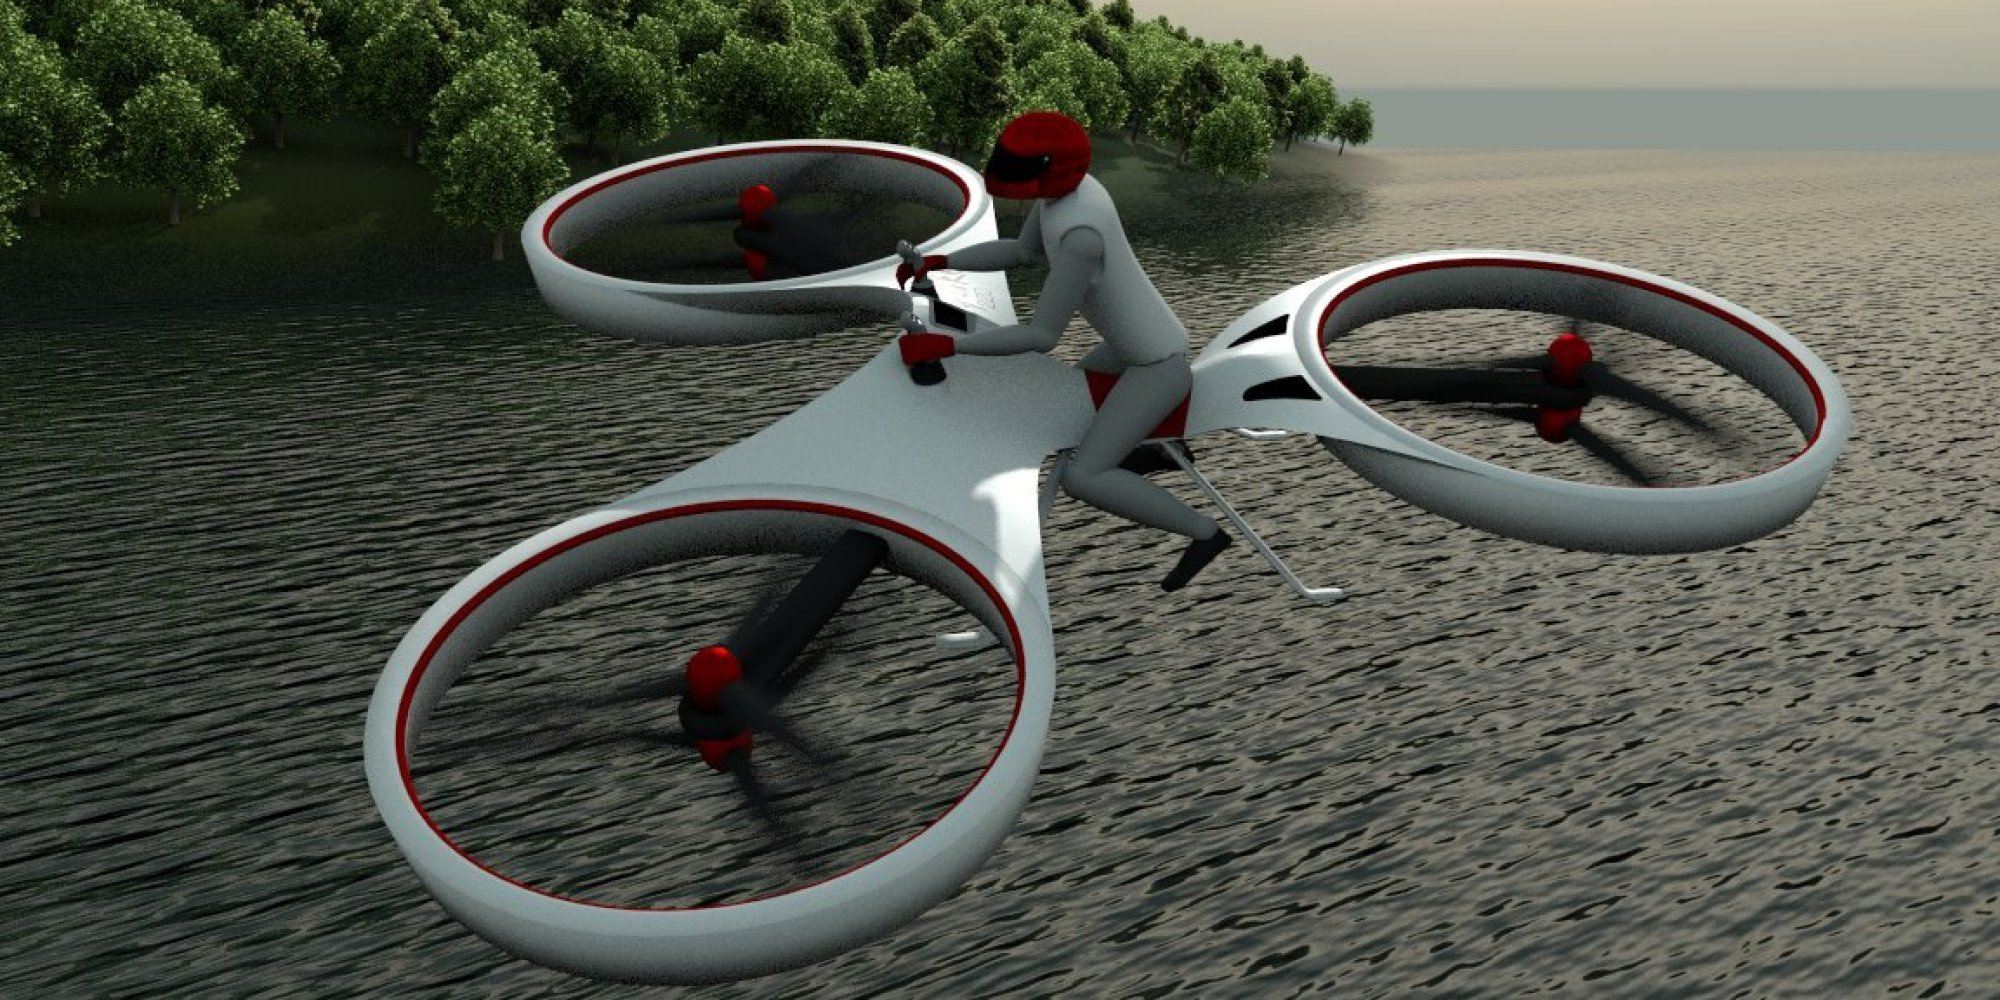 Hoverbike technology in trend